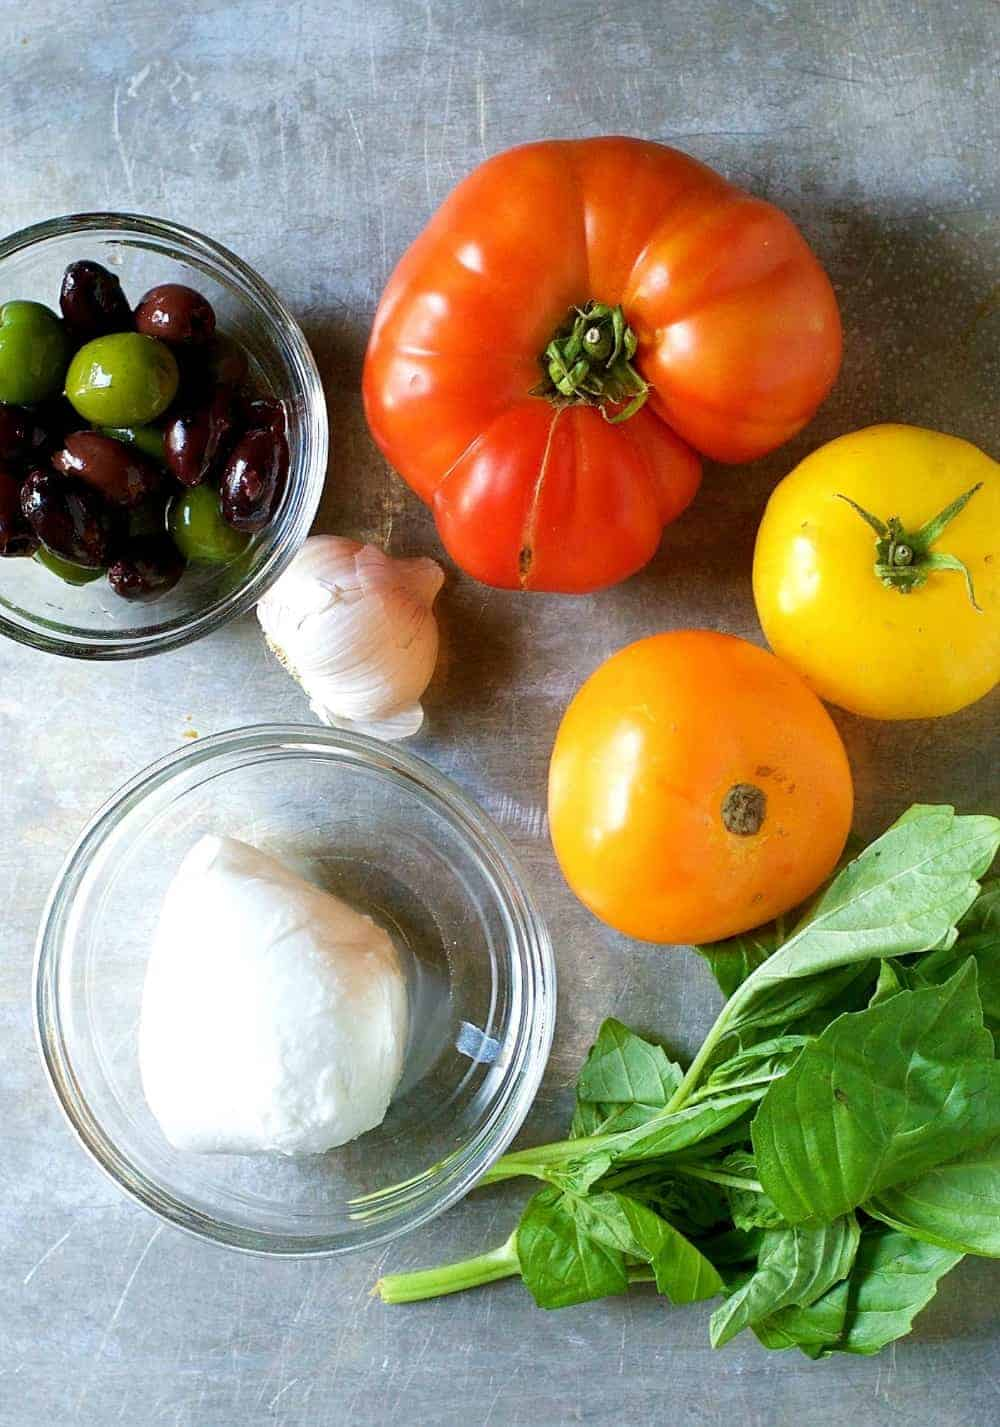 Ingredients for Checca Sauce or Pasta Alla Checca